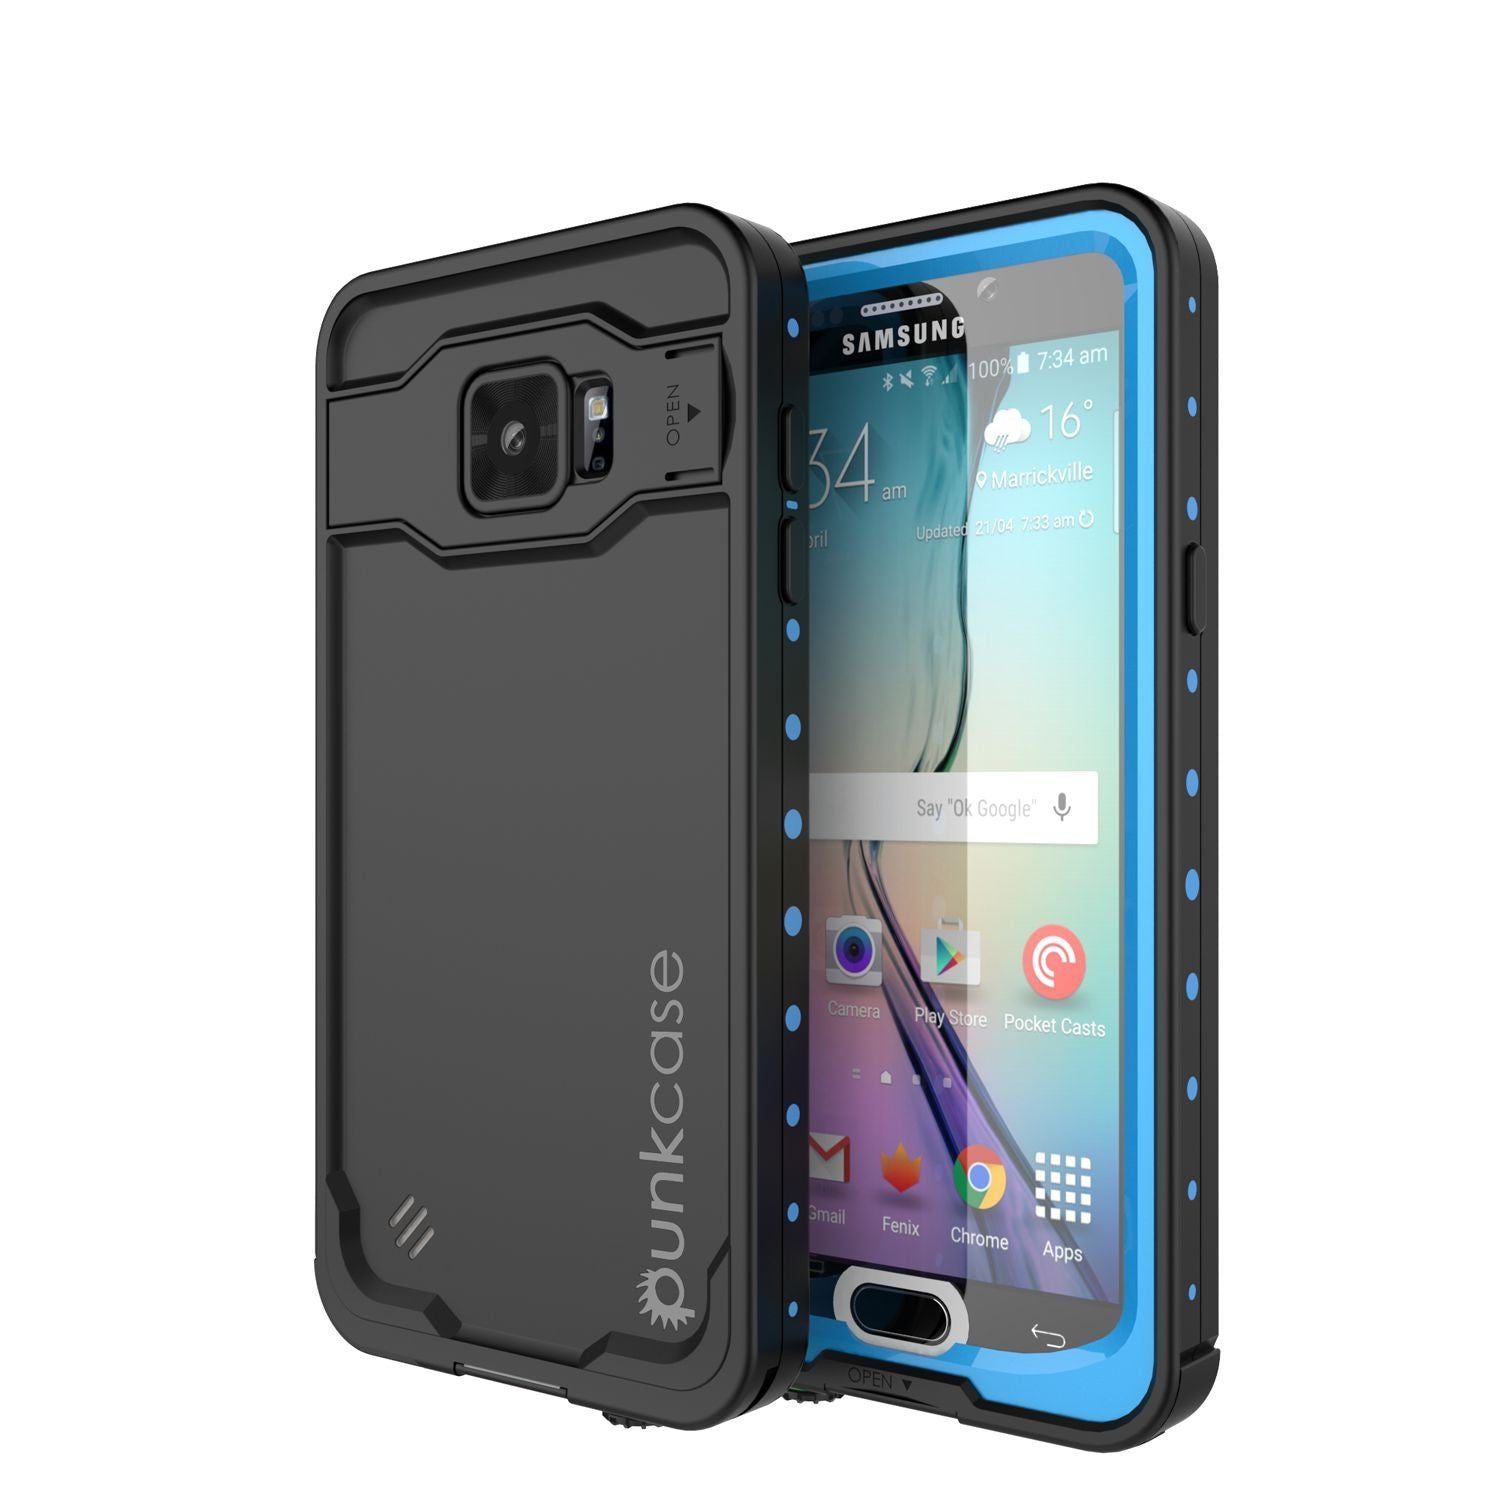 Galaxy Note 5 Waterproof Case, Punkcase StudStar Light Blue Shock/Dirt Proof | Lifetime Warranty